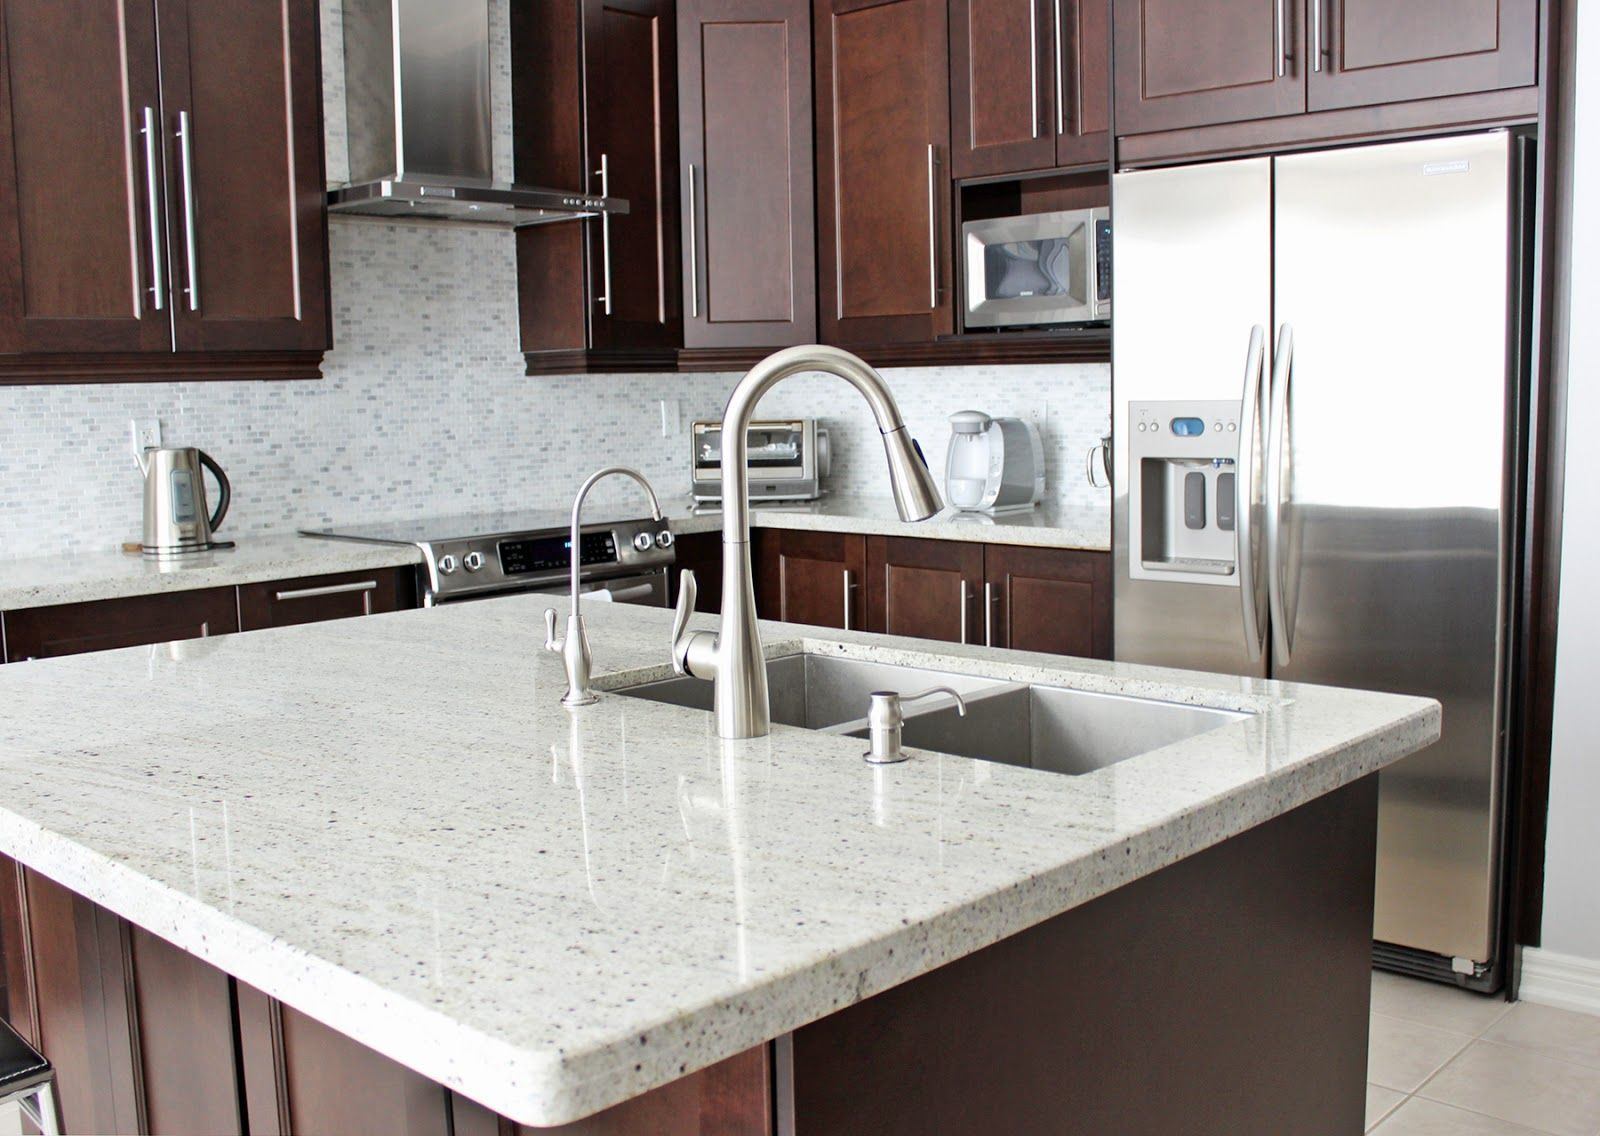 White Kitchens With White Granite Countertops 17 Best Ideas About Kashmir White Granite On Pinterest Granite